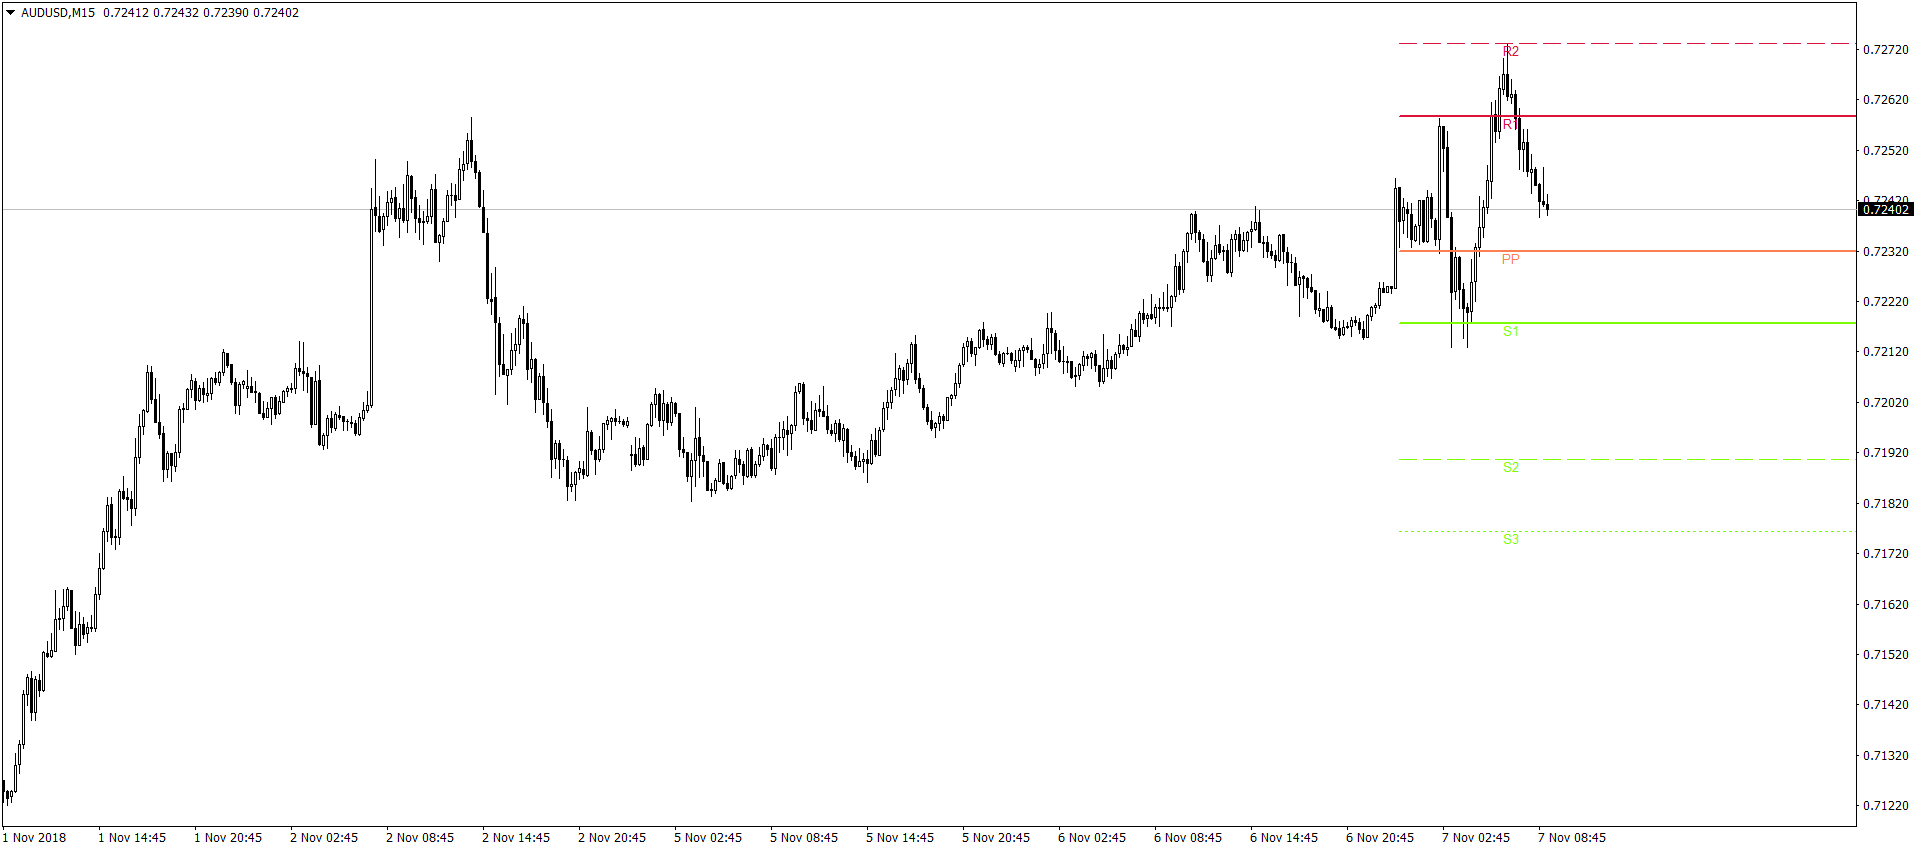 An Introduction to MetaTrader 4 Indicators 4